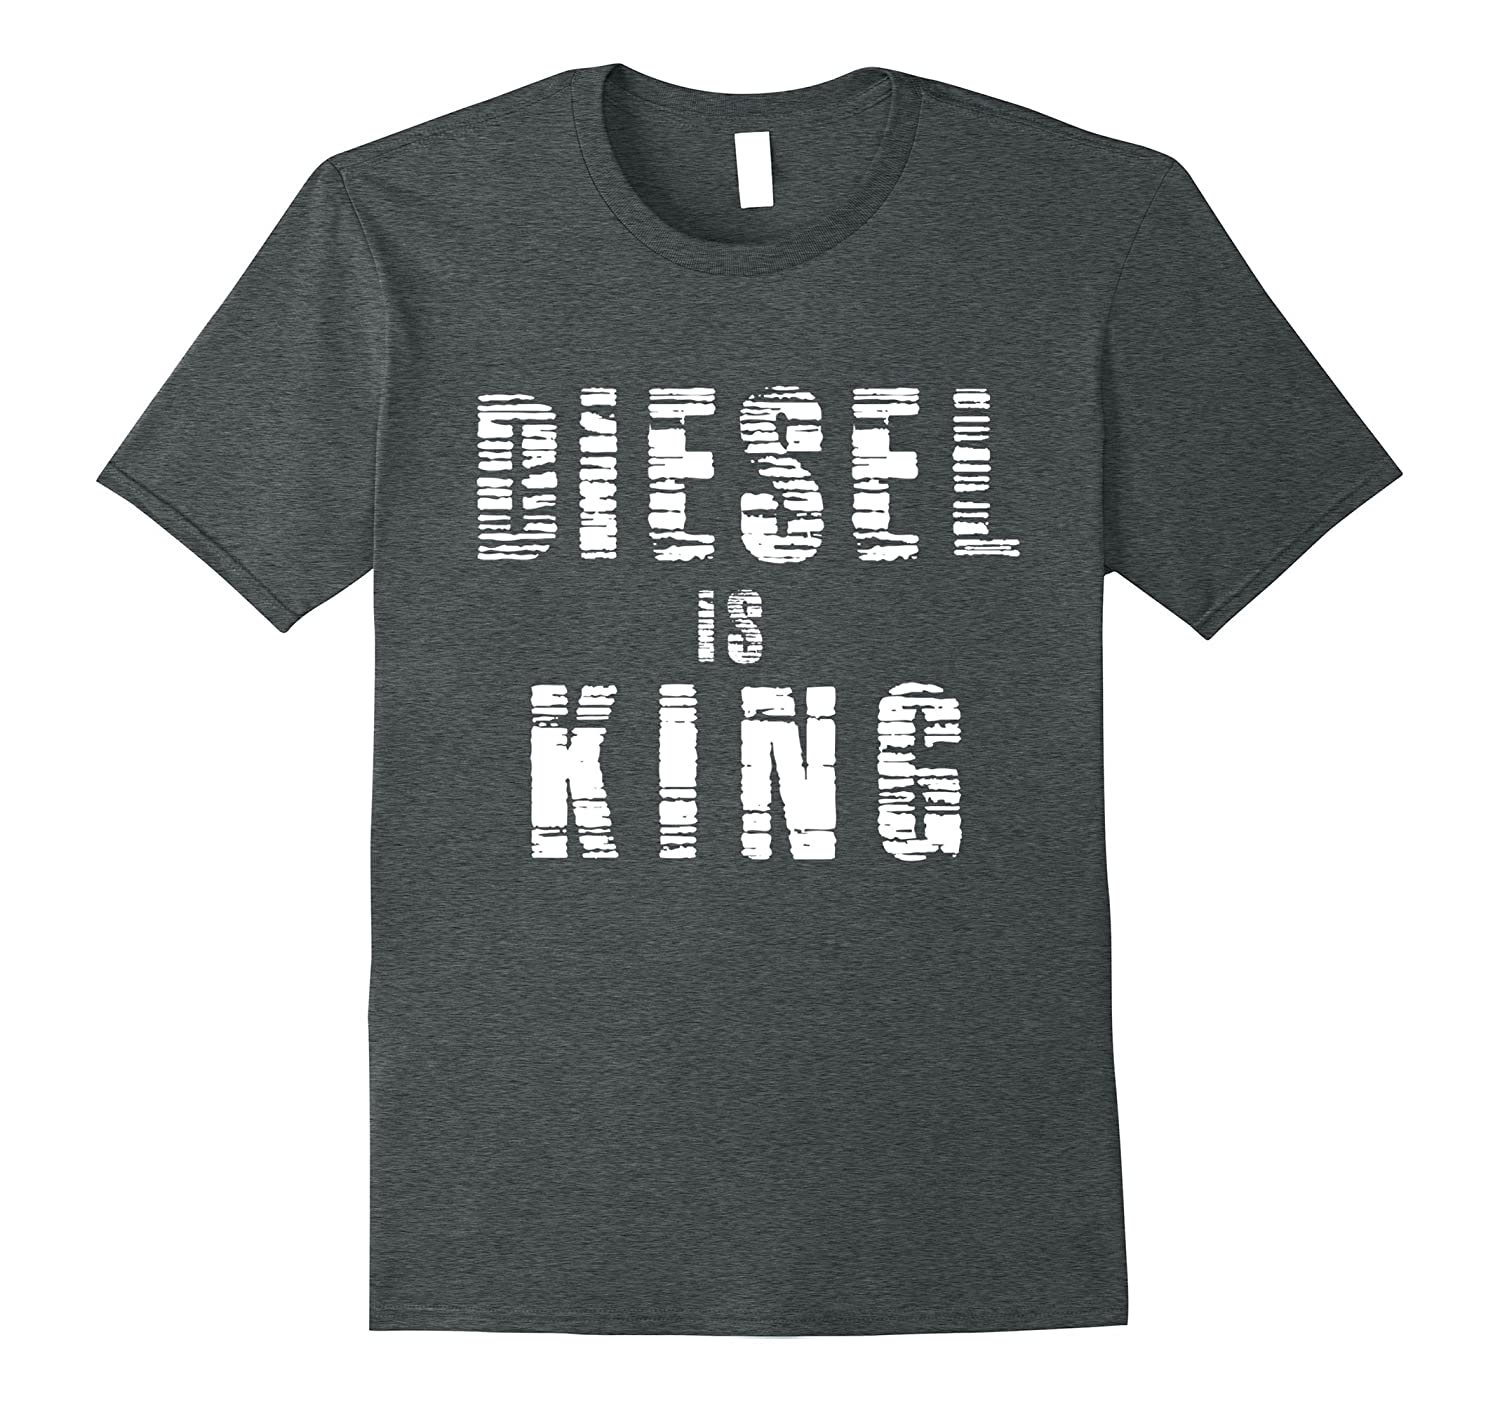 Diesel is King Shirt | Mechanic T-Shirt | DHX Shirts-FL